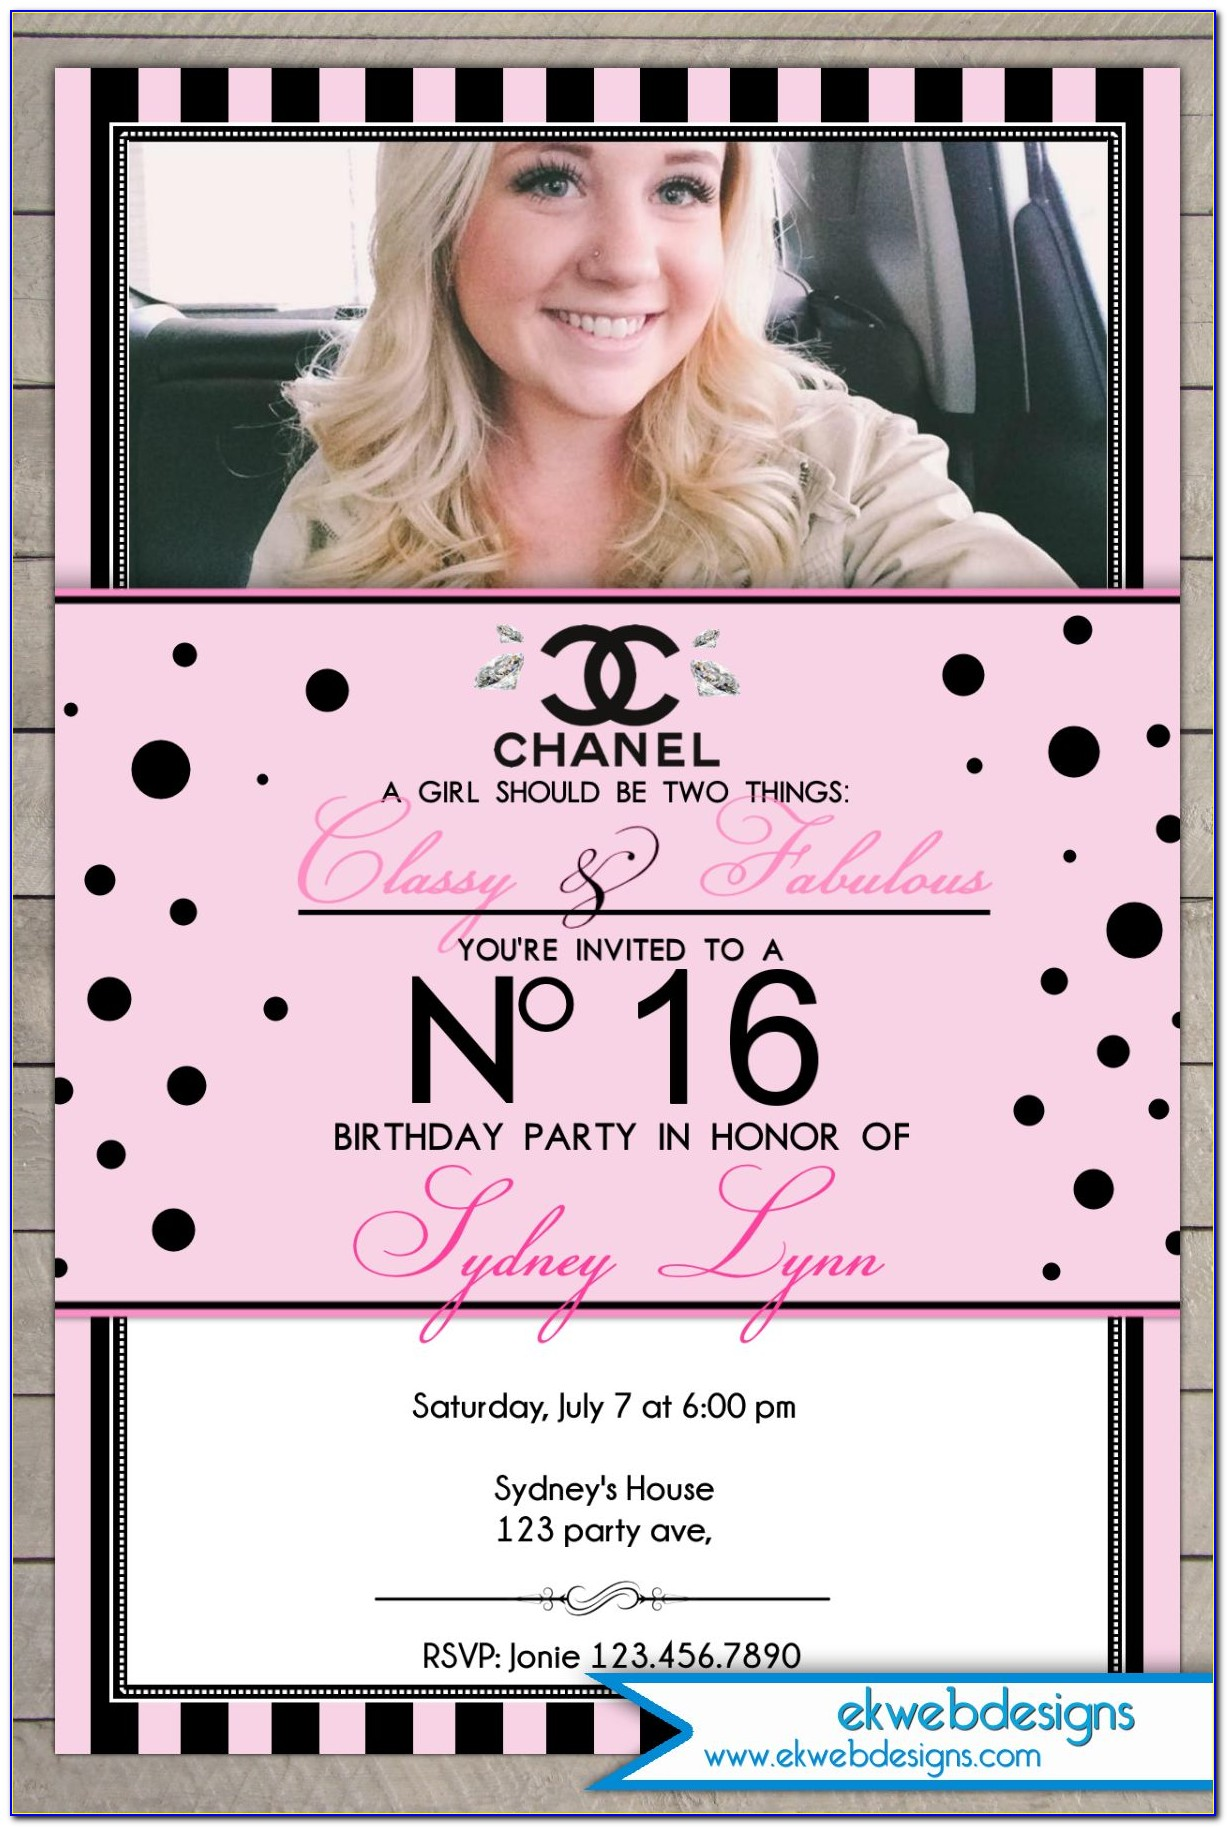 Chanel Sweet 16 Party Invitations